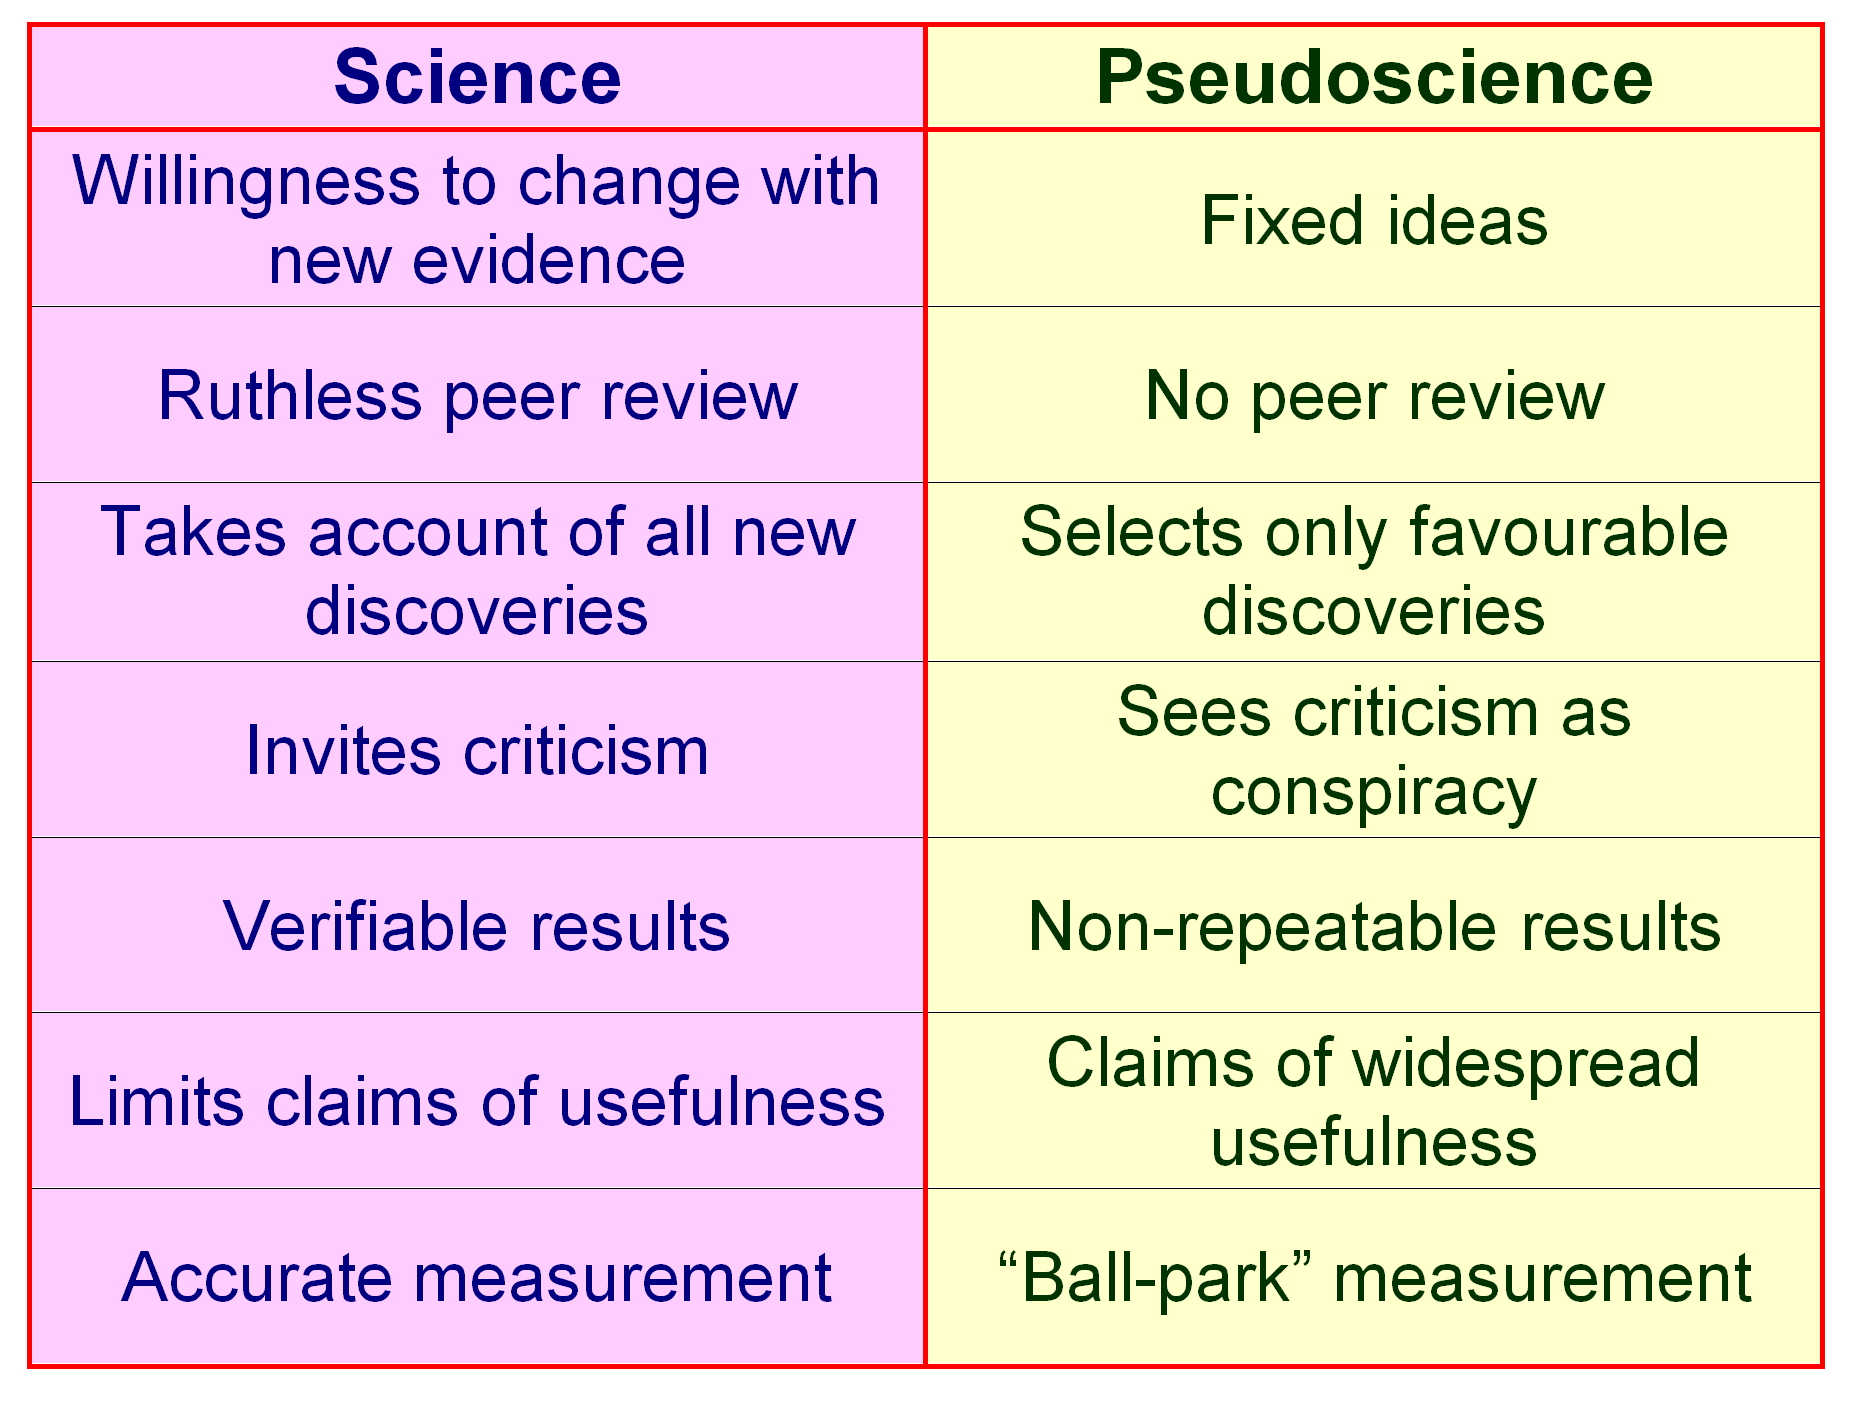 Difference between science and pseudoscience